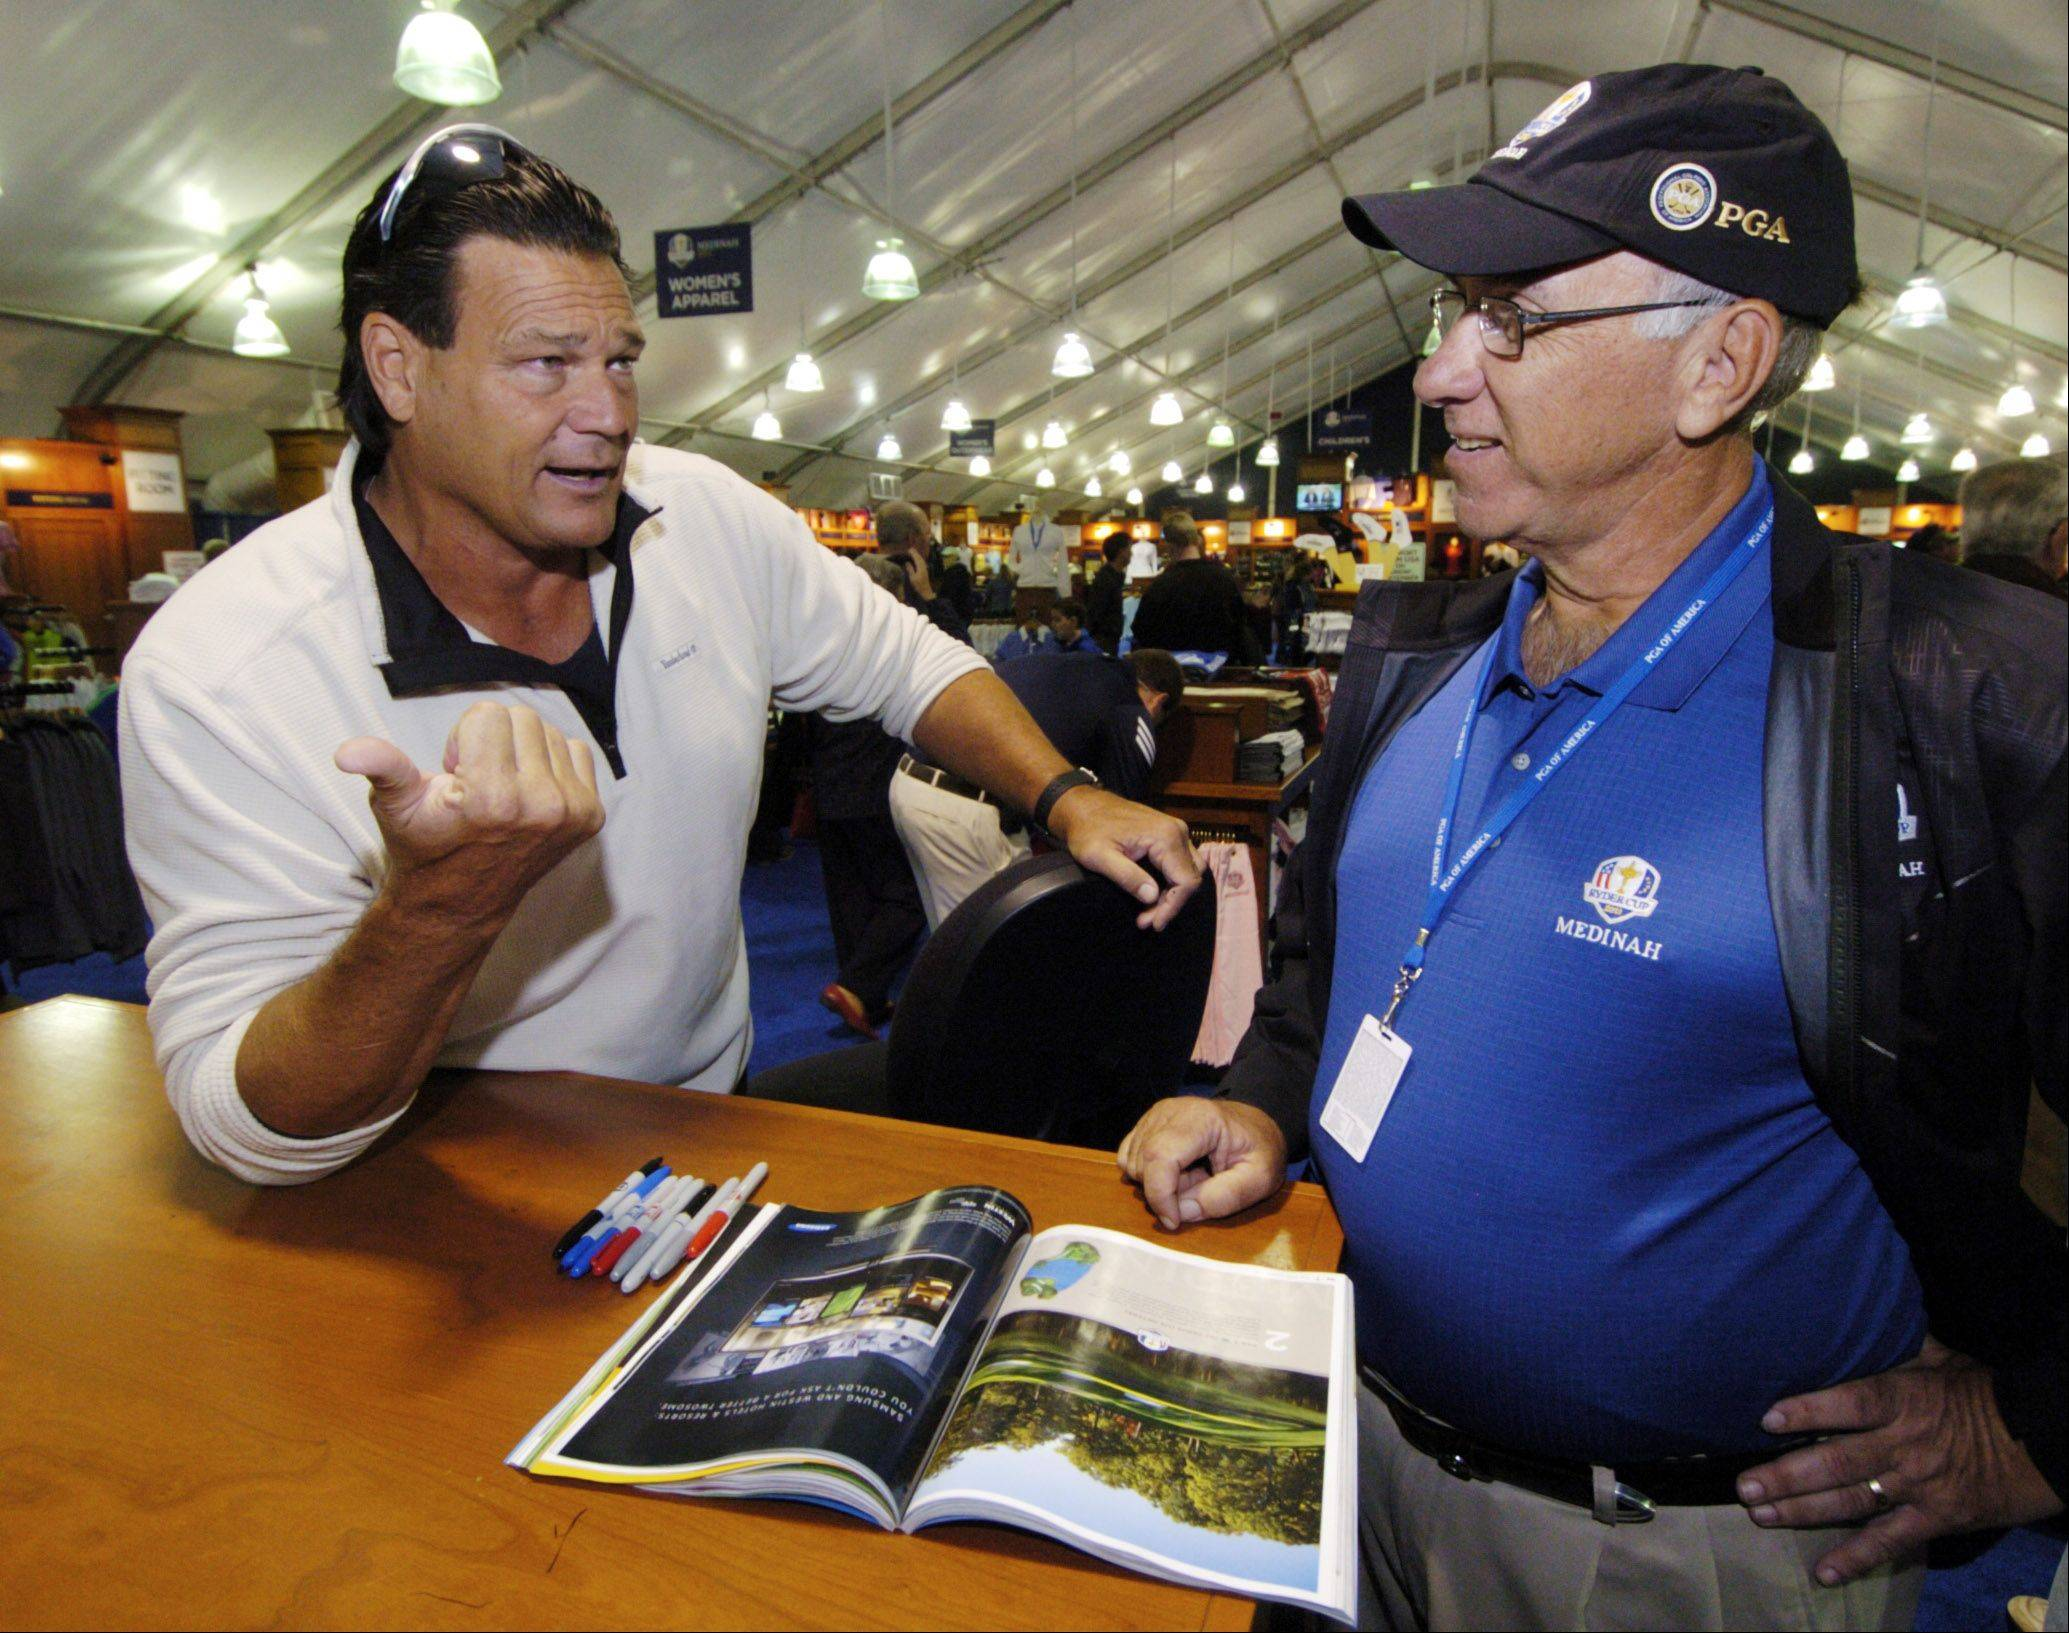 Former Chicago Bears Hall of Fame defensive lineman Dan Hampton talks about golf with club member Jim Grosskopf of Naperville while signing autographs Saturday during the Ryder Cup pre-sale at Medinah Country Club.